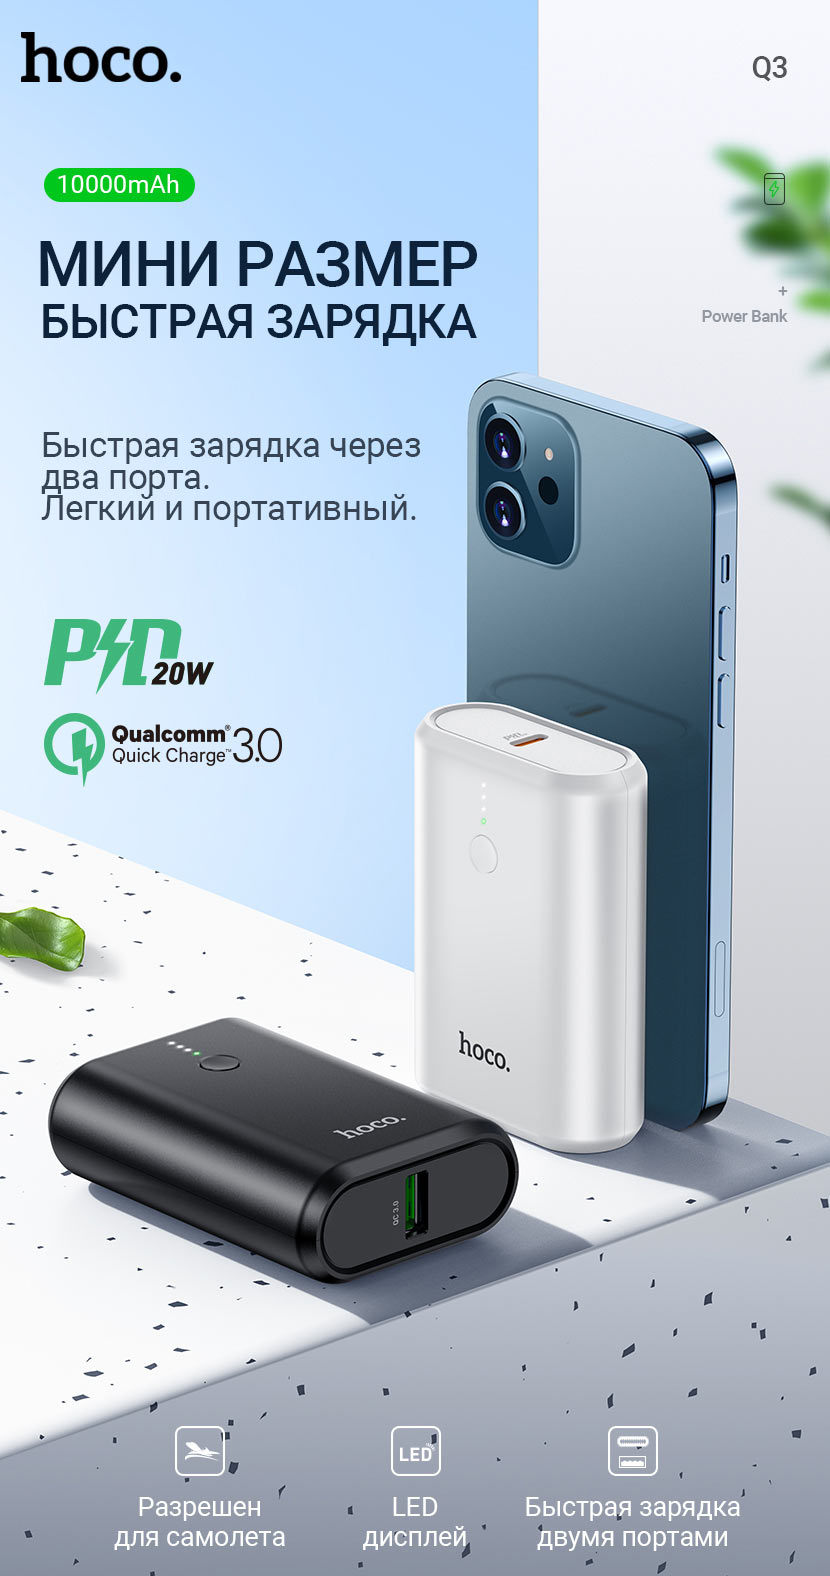 hoco news q3 mayflower pd20w qc3 power bank 10000mah ru